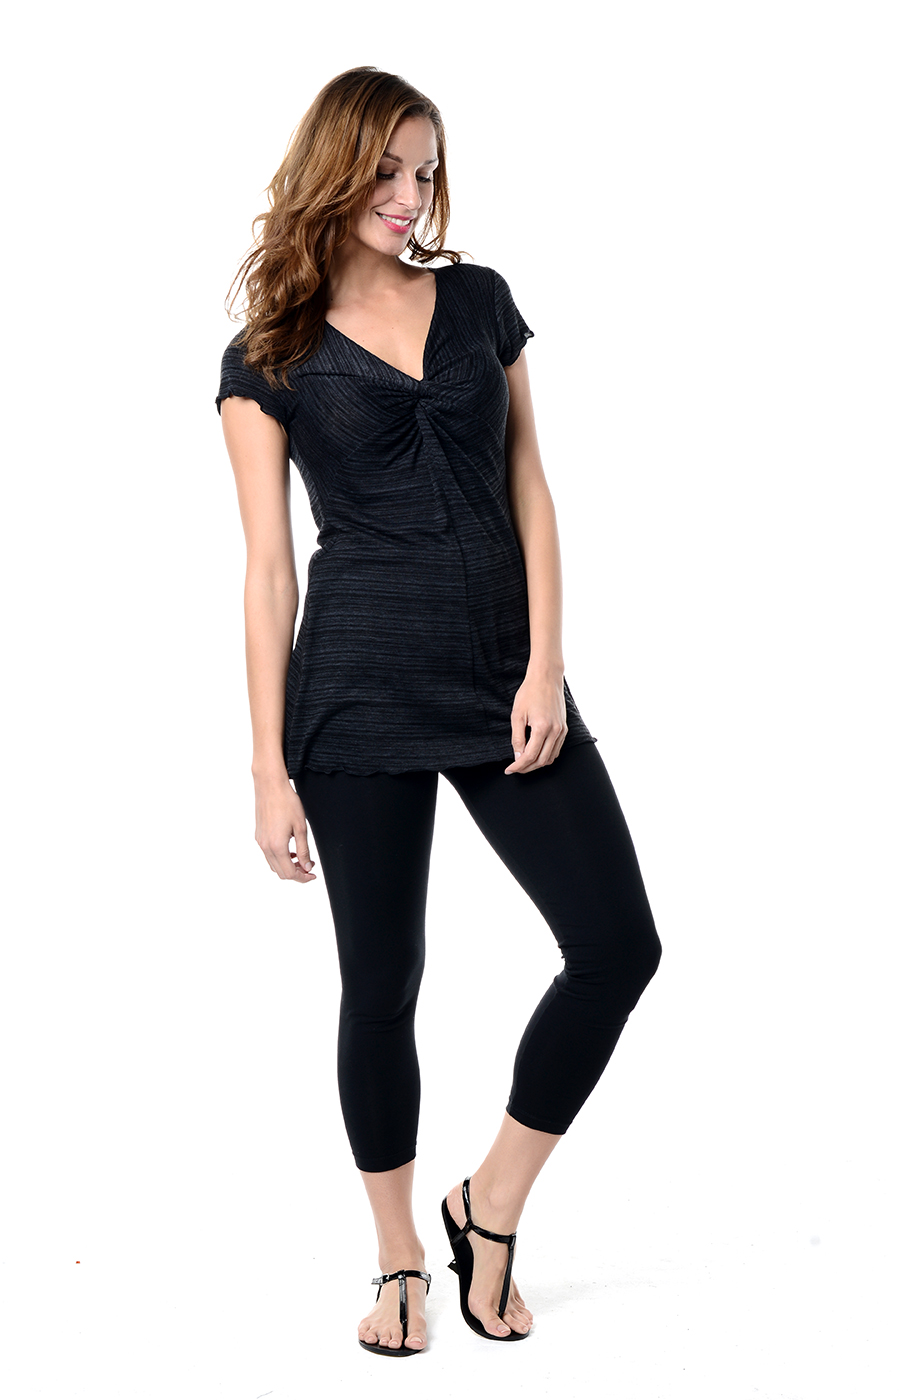 Shop maternity clothes online at Destination Maternity. Find Motherhood maternity shirts and maternity blouses in a selection of styles! Destination Maternity.